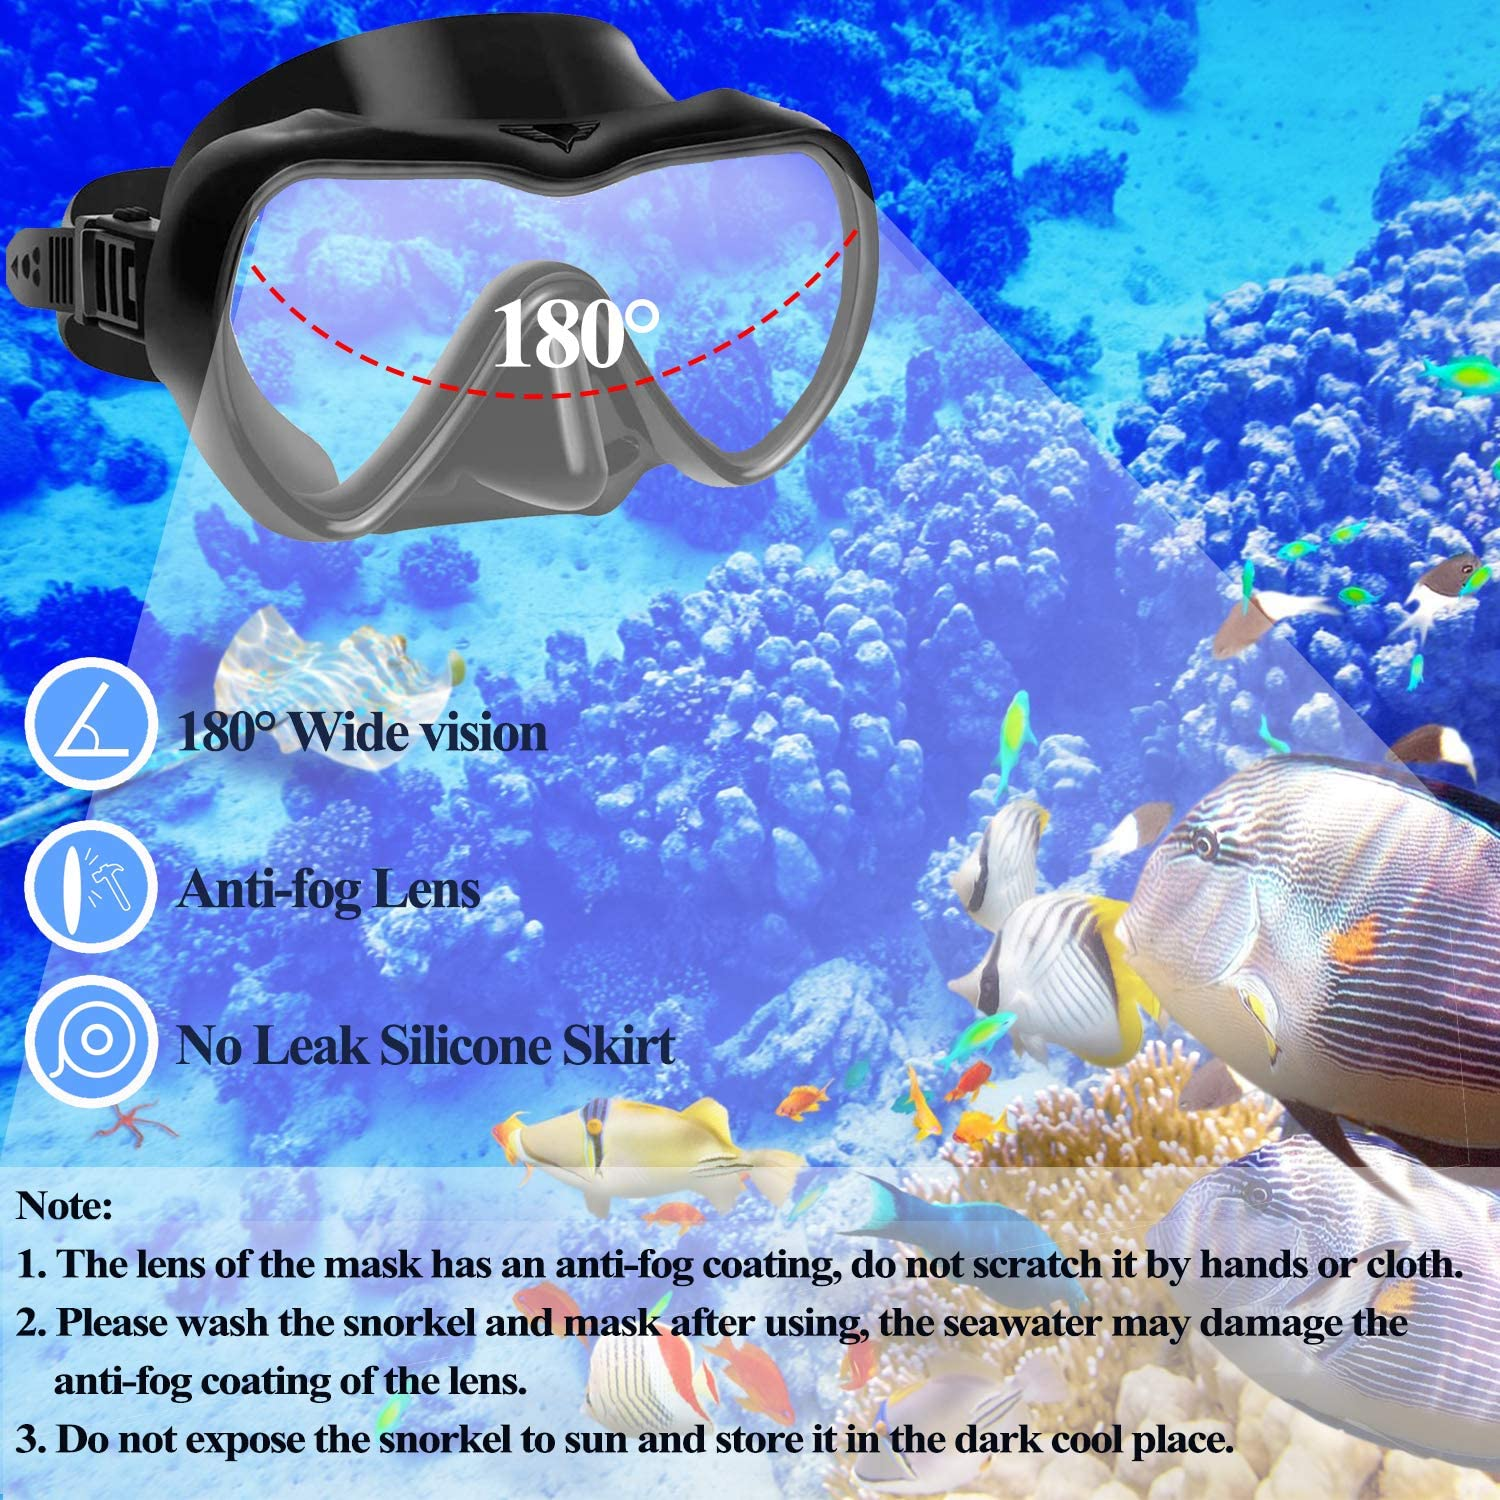 Scuba Diving Swimming Training Equipment Youth Junior Men Womens QTECLOR Snorkel Mask Set Snorkeling Gear Dry Snorkel Set and Mask Kids Adults Anti Fog 180 Degree Seaview with Mesh Bag